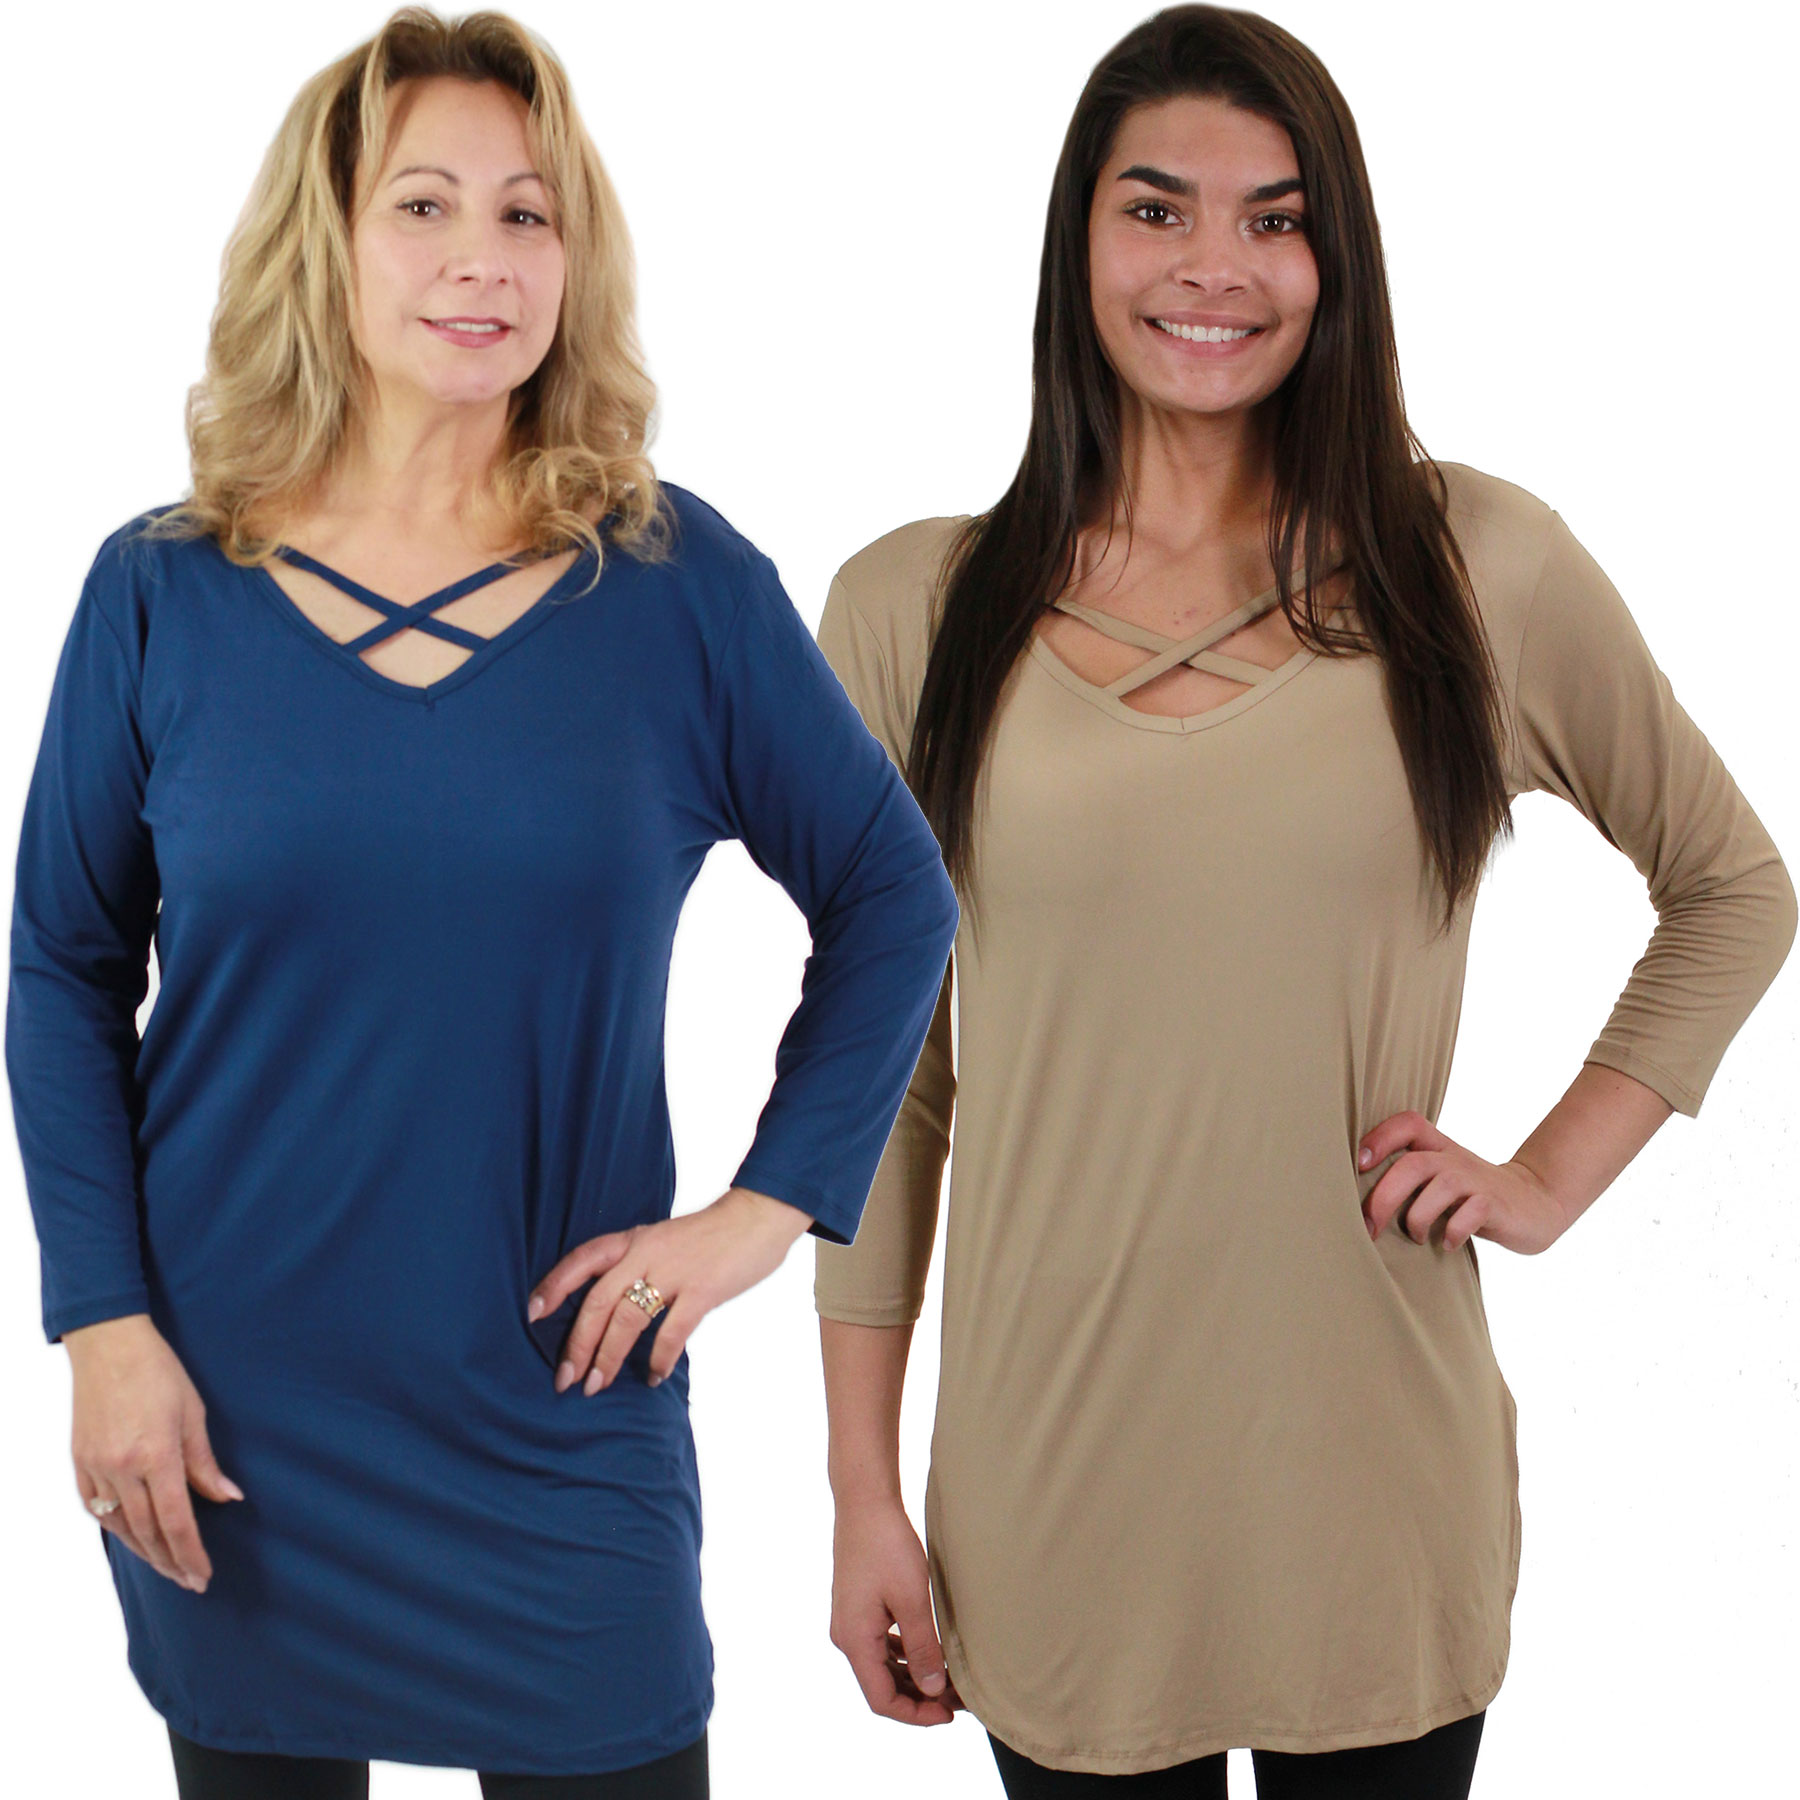 Brushed Fiber Criss Cross Tunic Tops